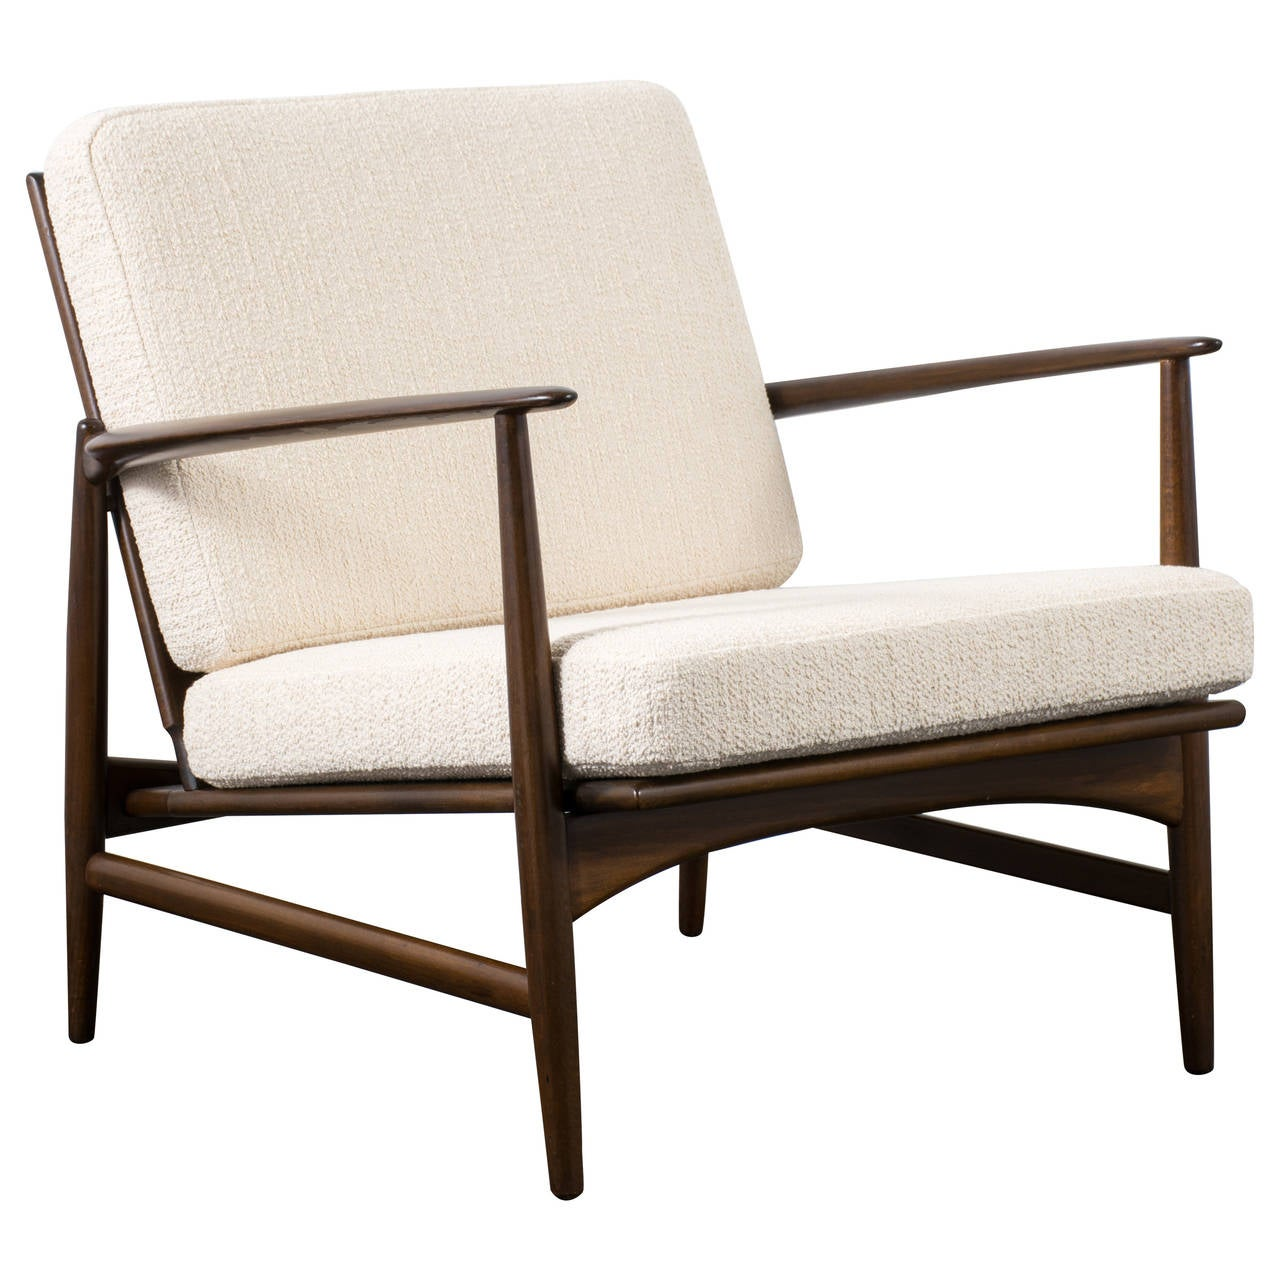 Selig Lounge Chair Danish Modern Lounge Chair By Kofod Larsen For Selig At